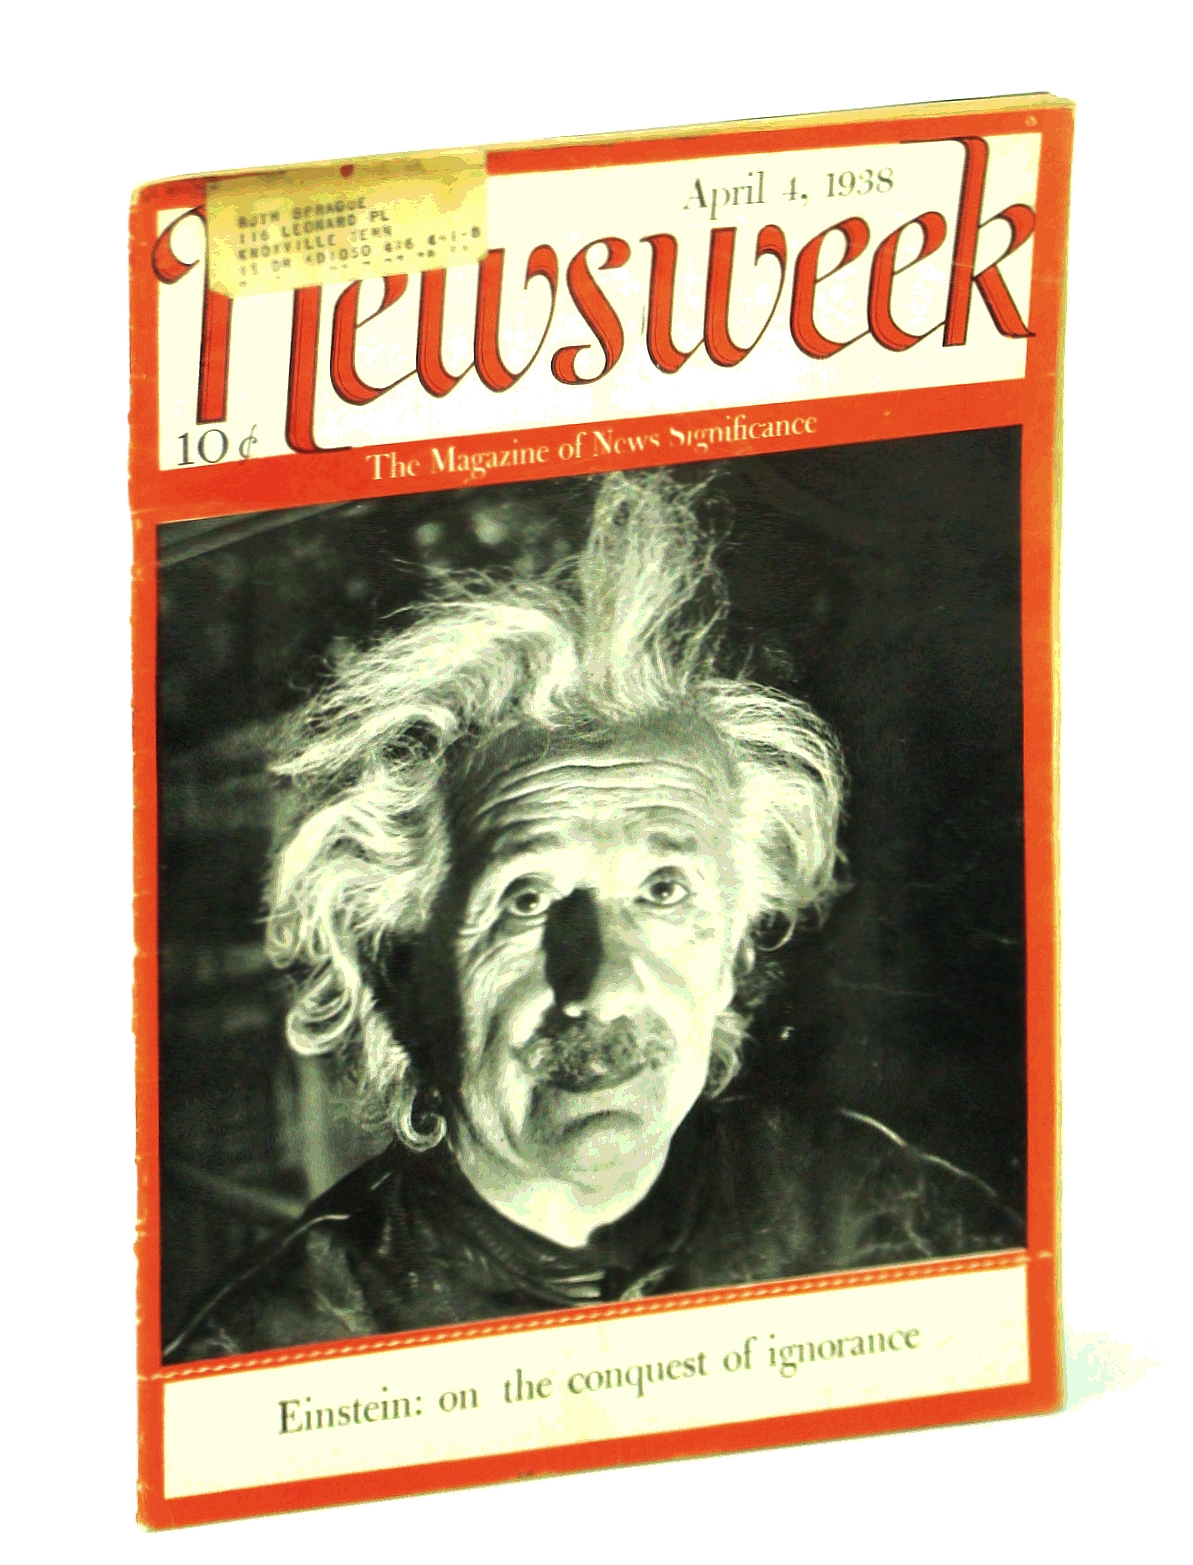 Image for Newsweek Magazine, April 4, 1938 - Albert Einstein Cover Photo and Feature Article